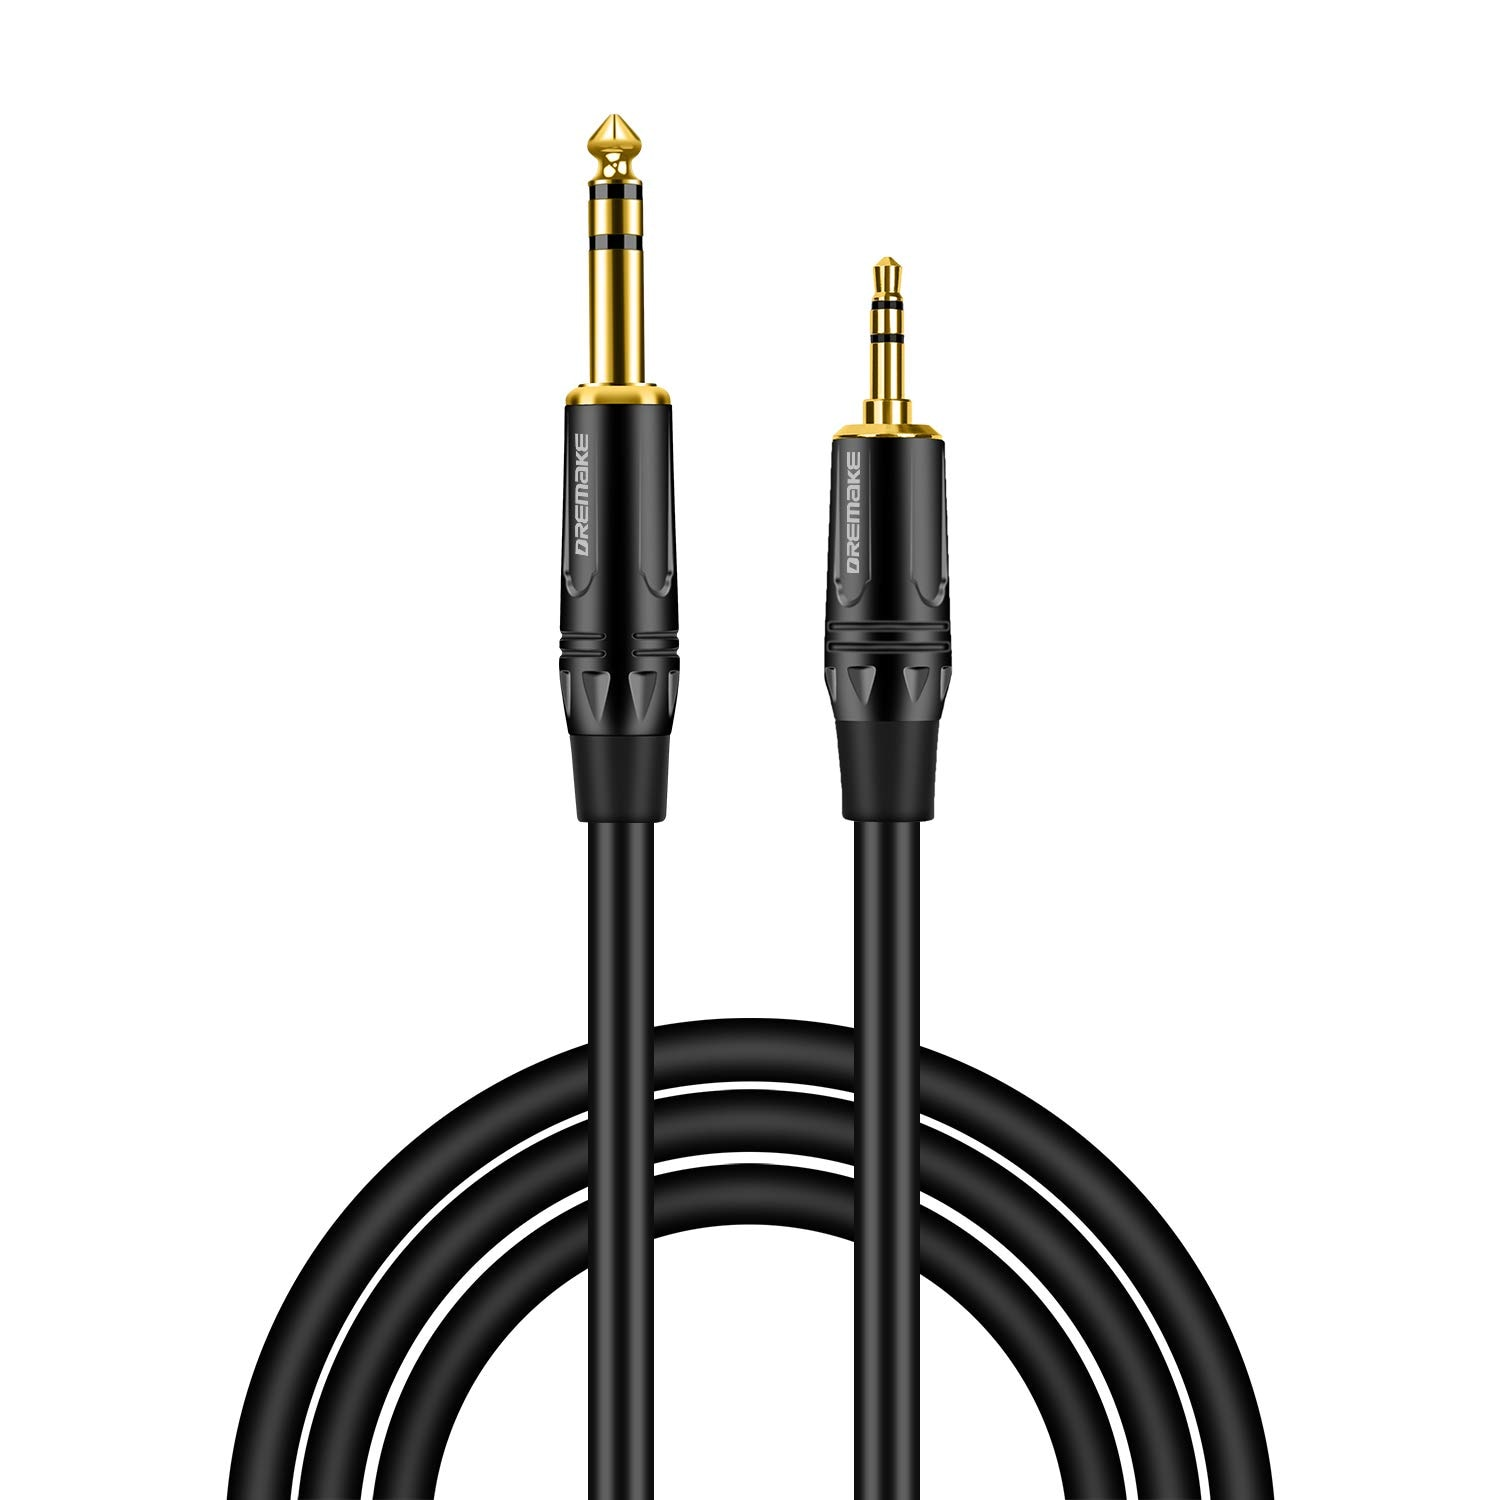 Купить с кэшбэком 1/8 Inch TRS Male to 1/4 Inch TRS Male Jack Audio Cable, 3.5 to 6.35 Adapter Cable for Ampilifer,MP3/MP4 Player, Samrtphones